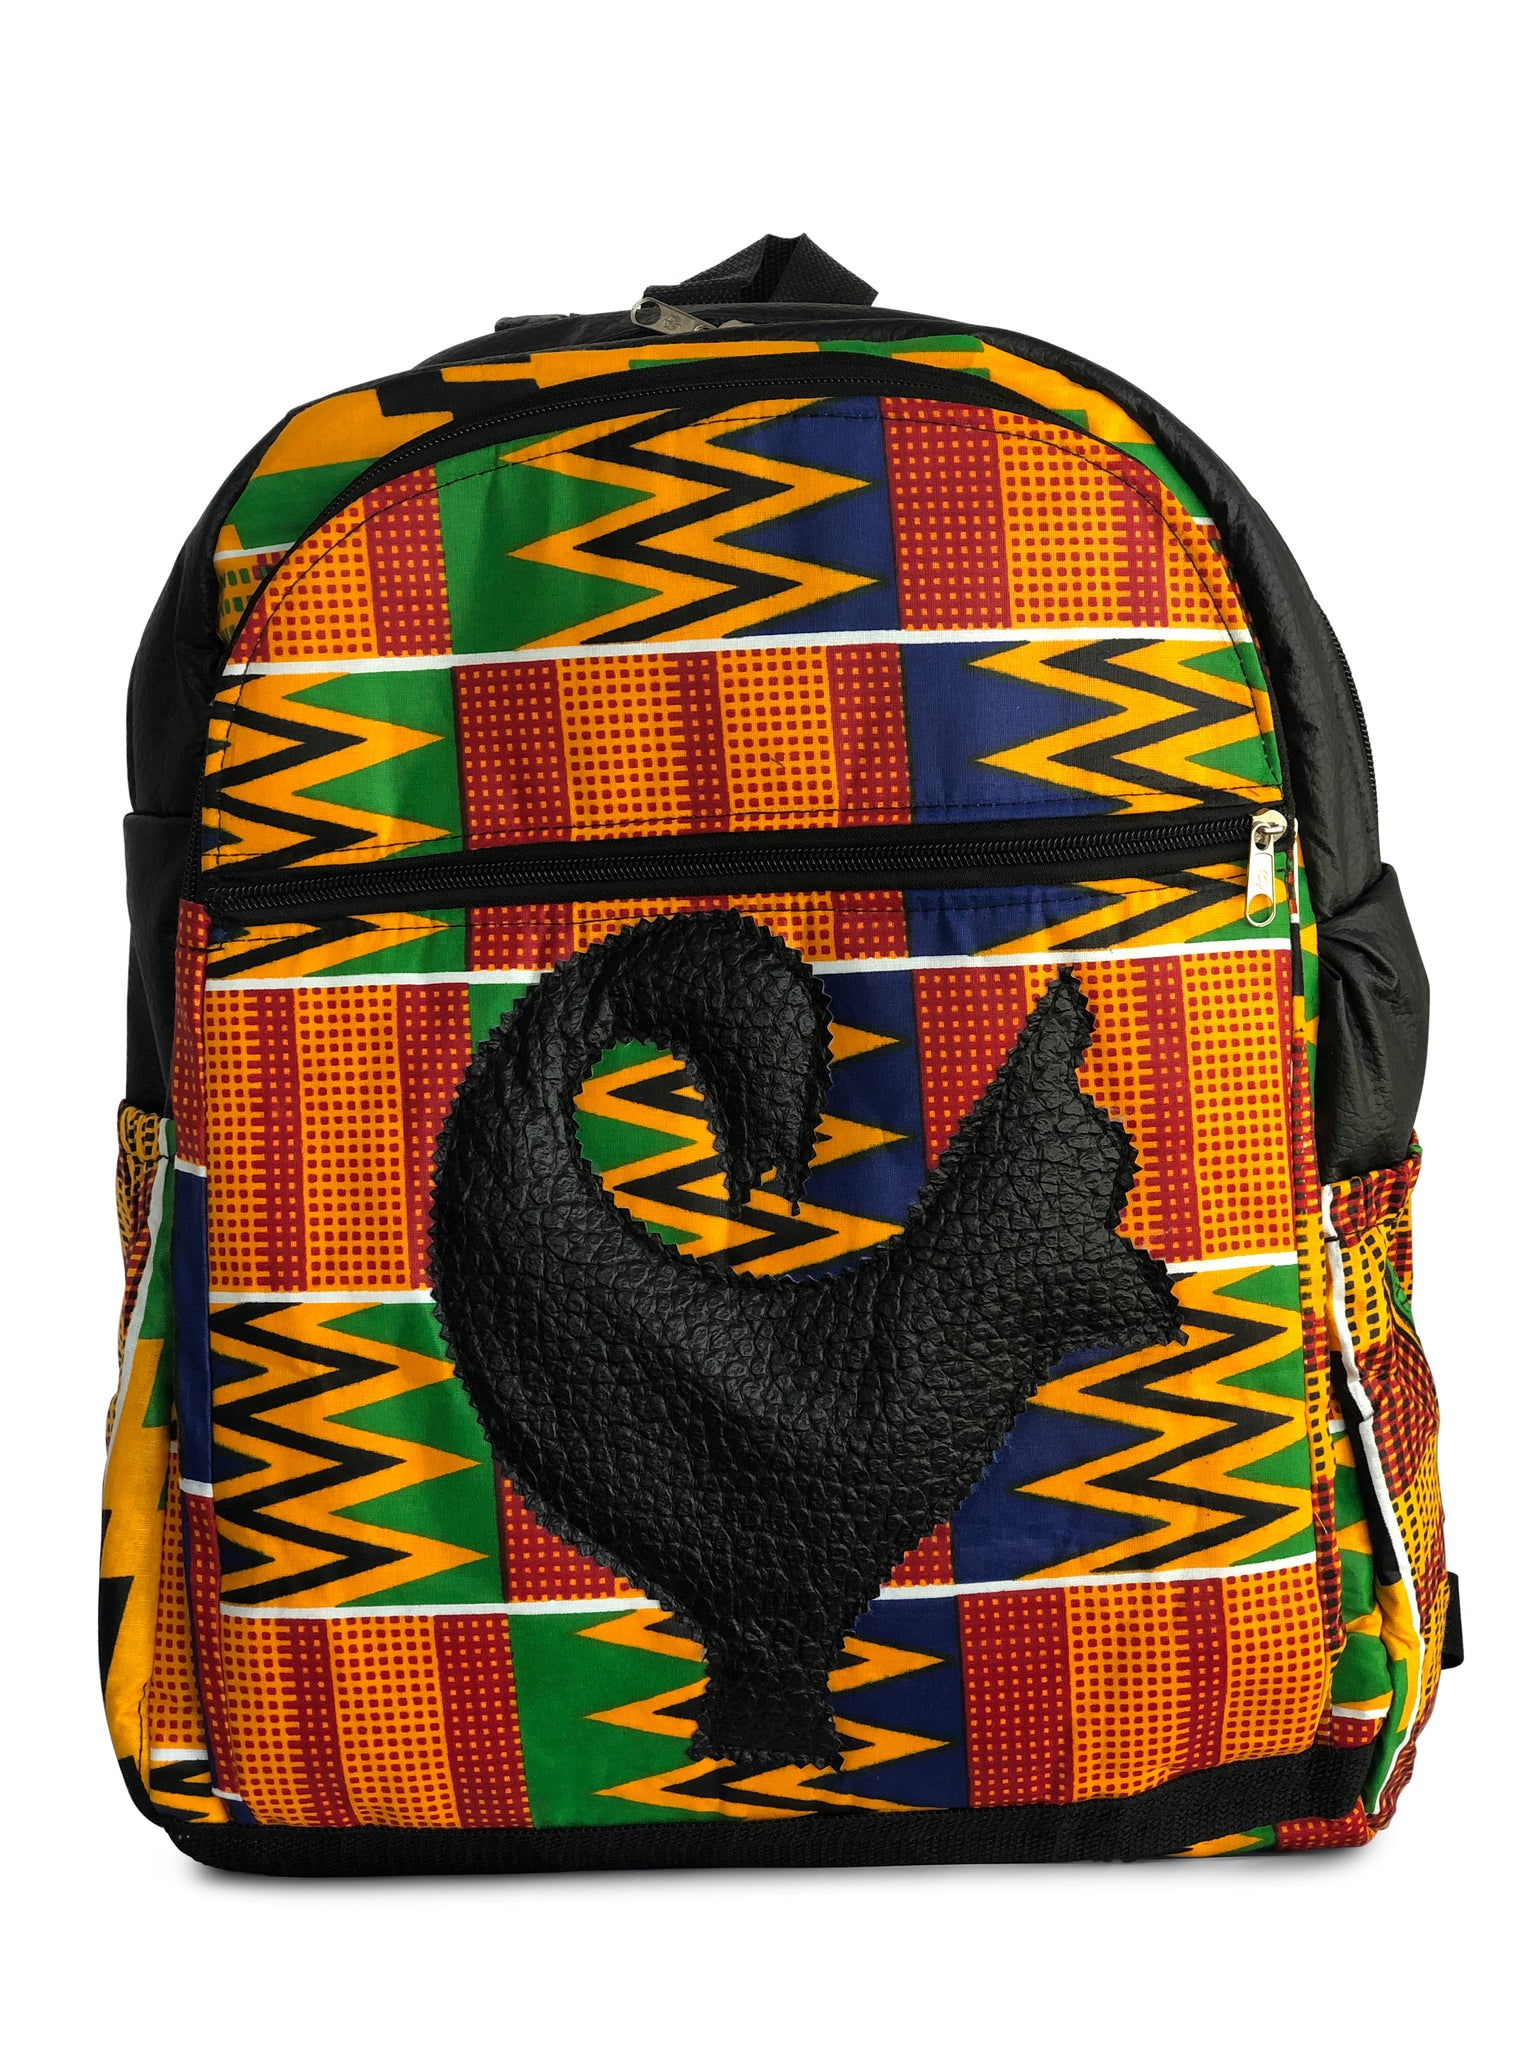 Black History Limited Edition Sankofa (Queen Mother Black)